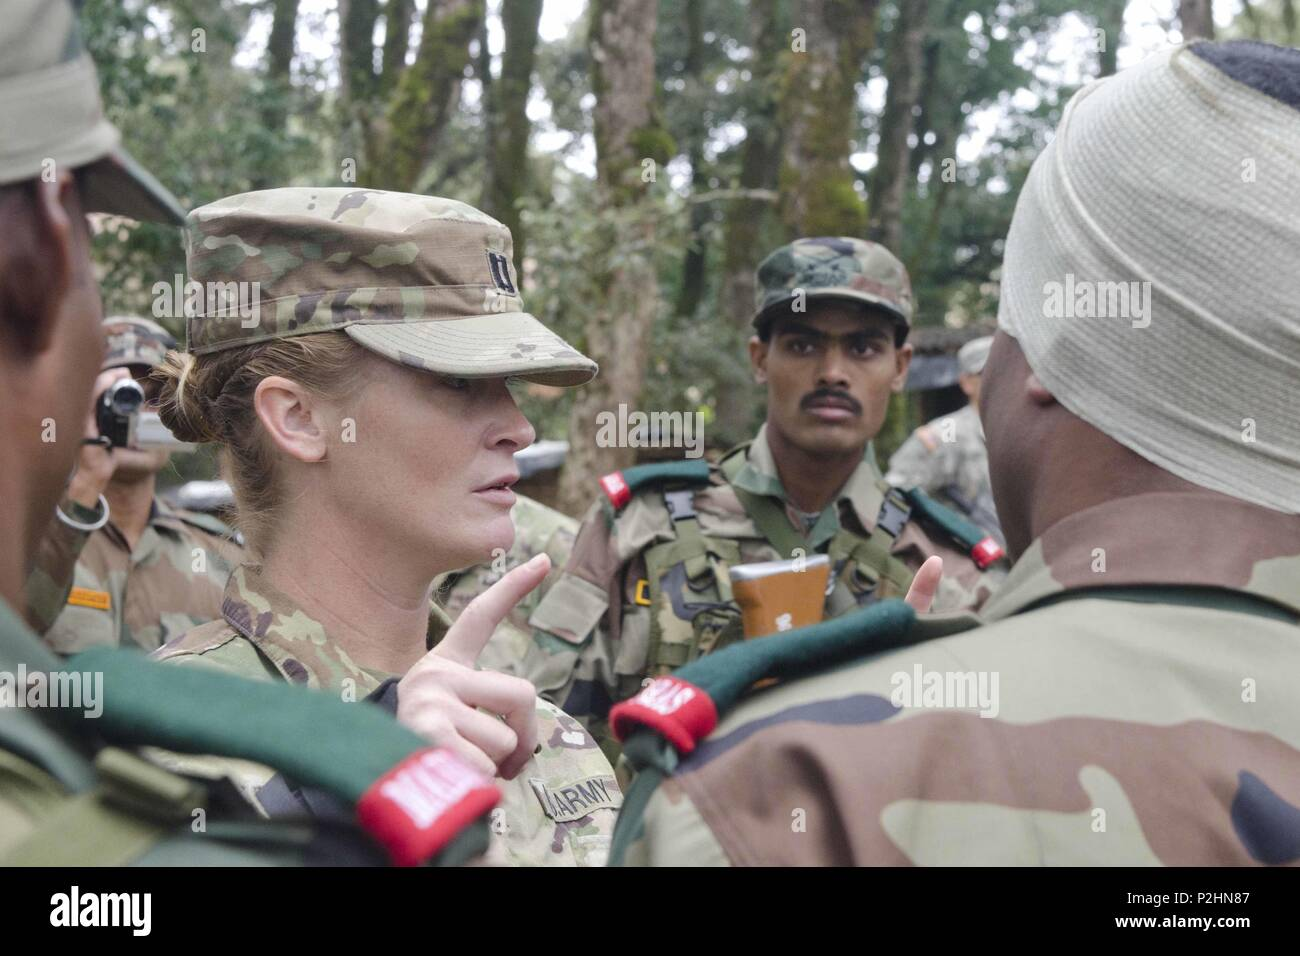 India Bandage Stock Photos & India Bandage Stock Images - Alamy